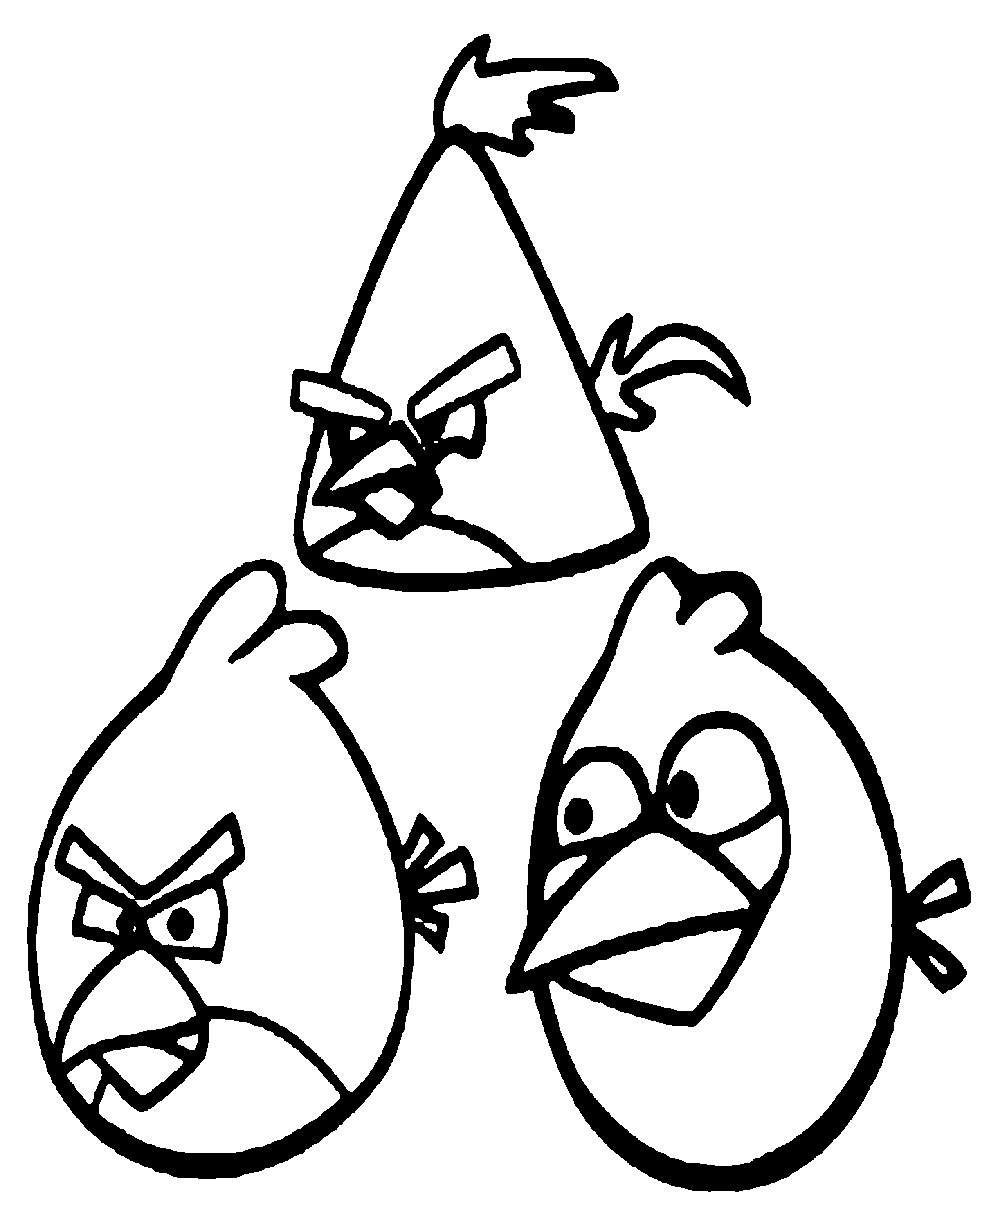 Angry birds 10 coloriage angry birds coloriages pour - Angry bird coloriage ...